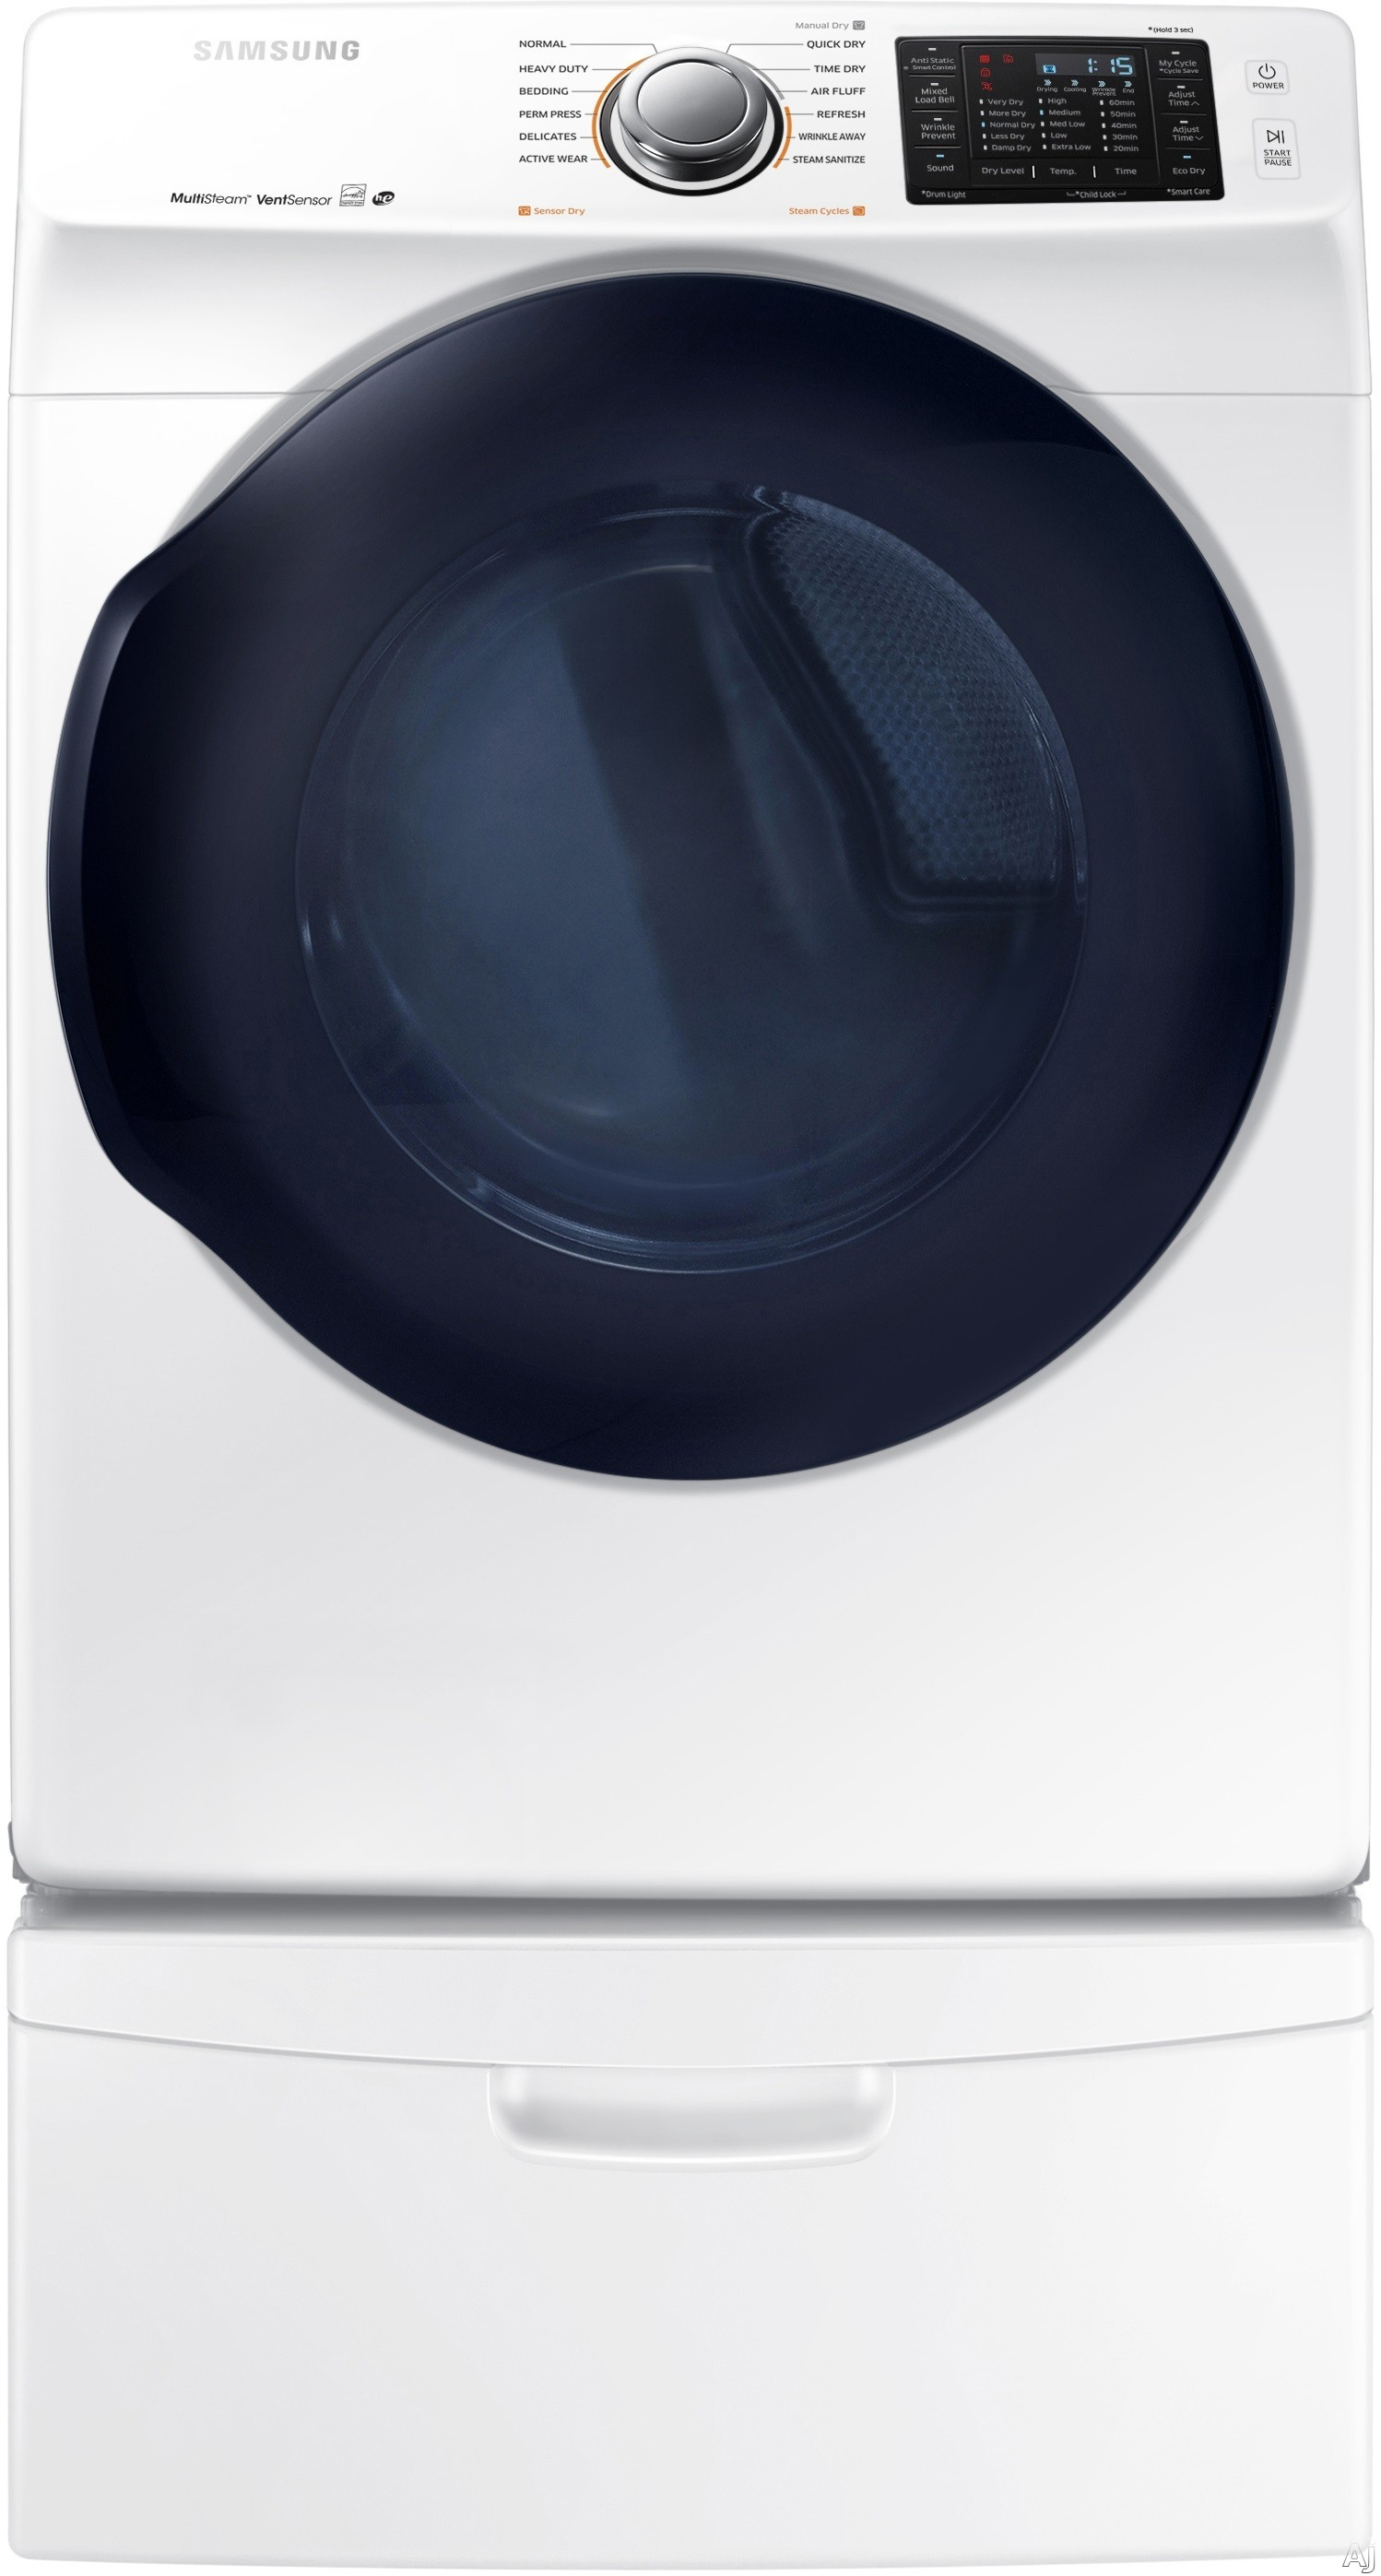 Samsung Laundry,Samsung Dryers,Samsung Gas Dryers